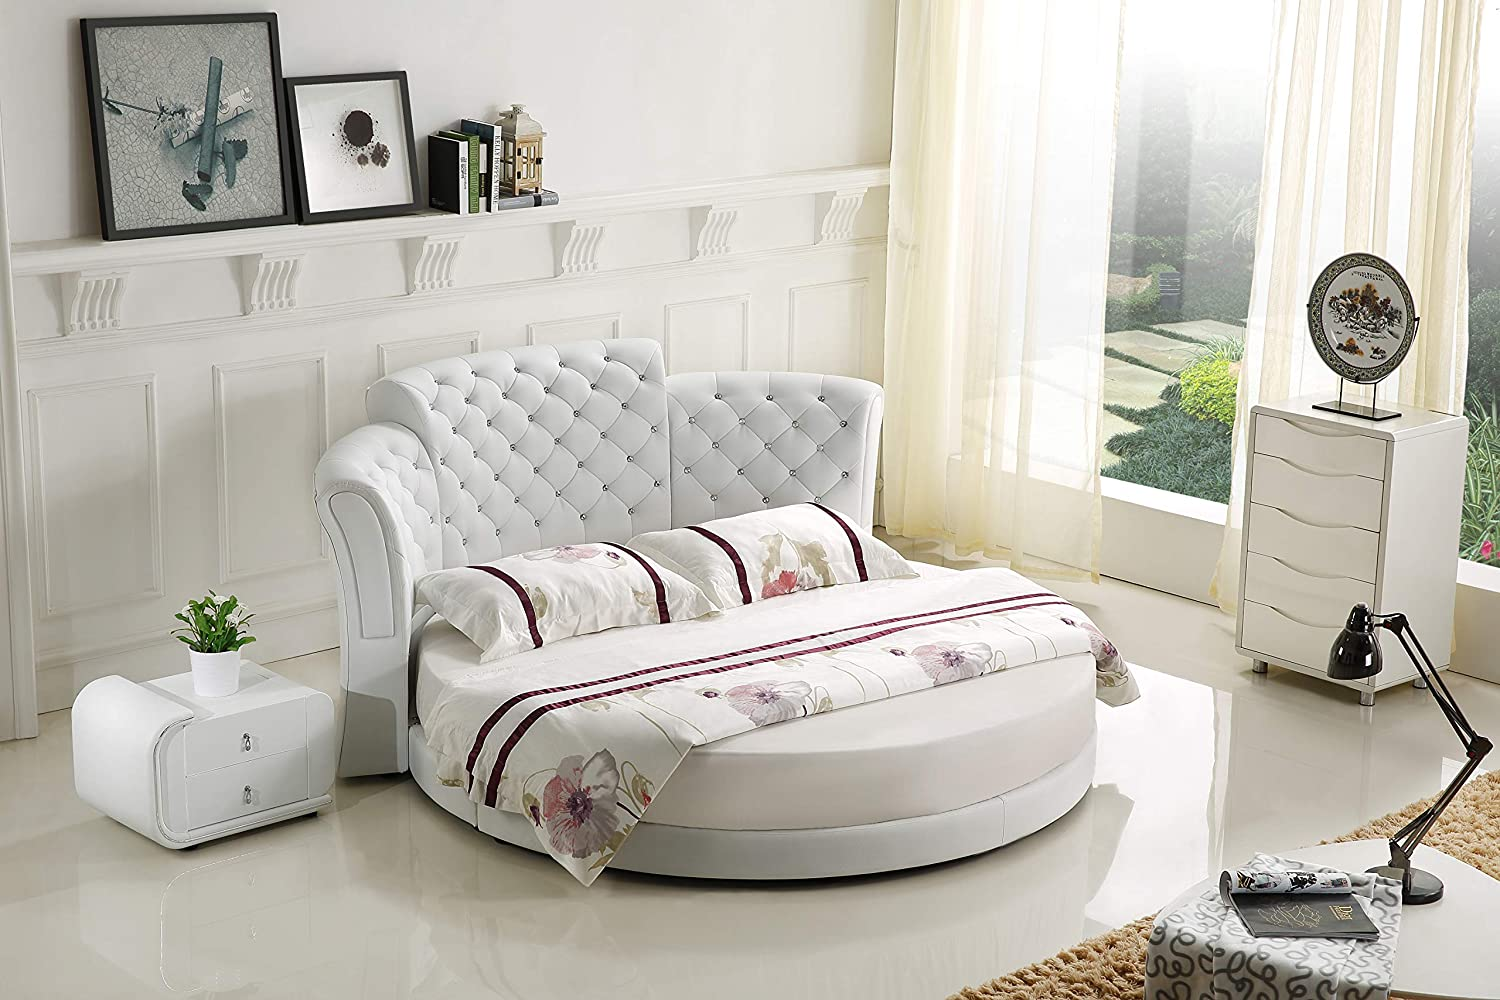 The Controversy Over Round King Size Bedroom Sets